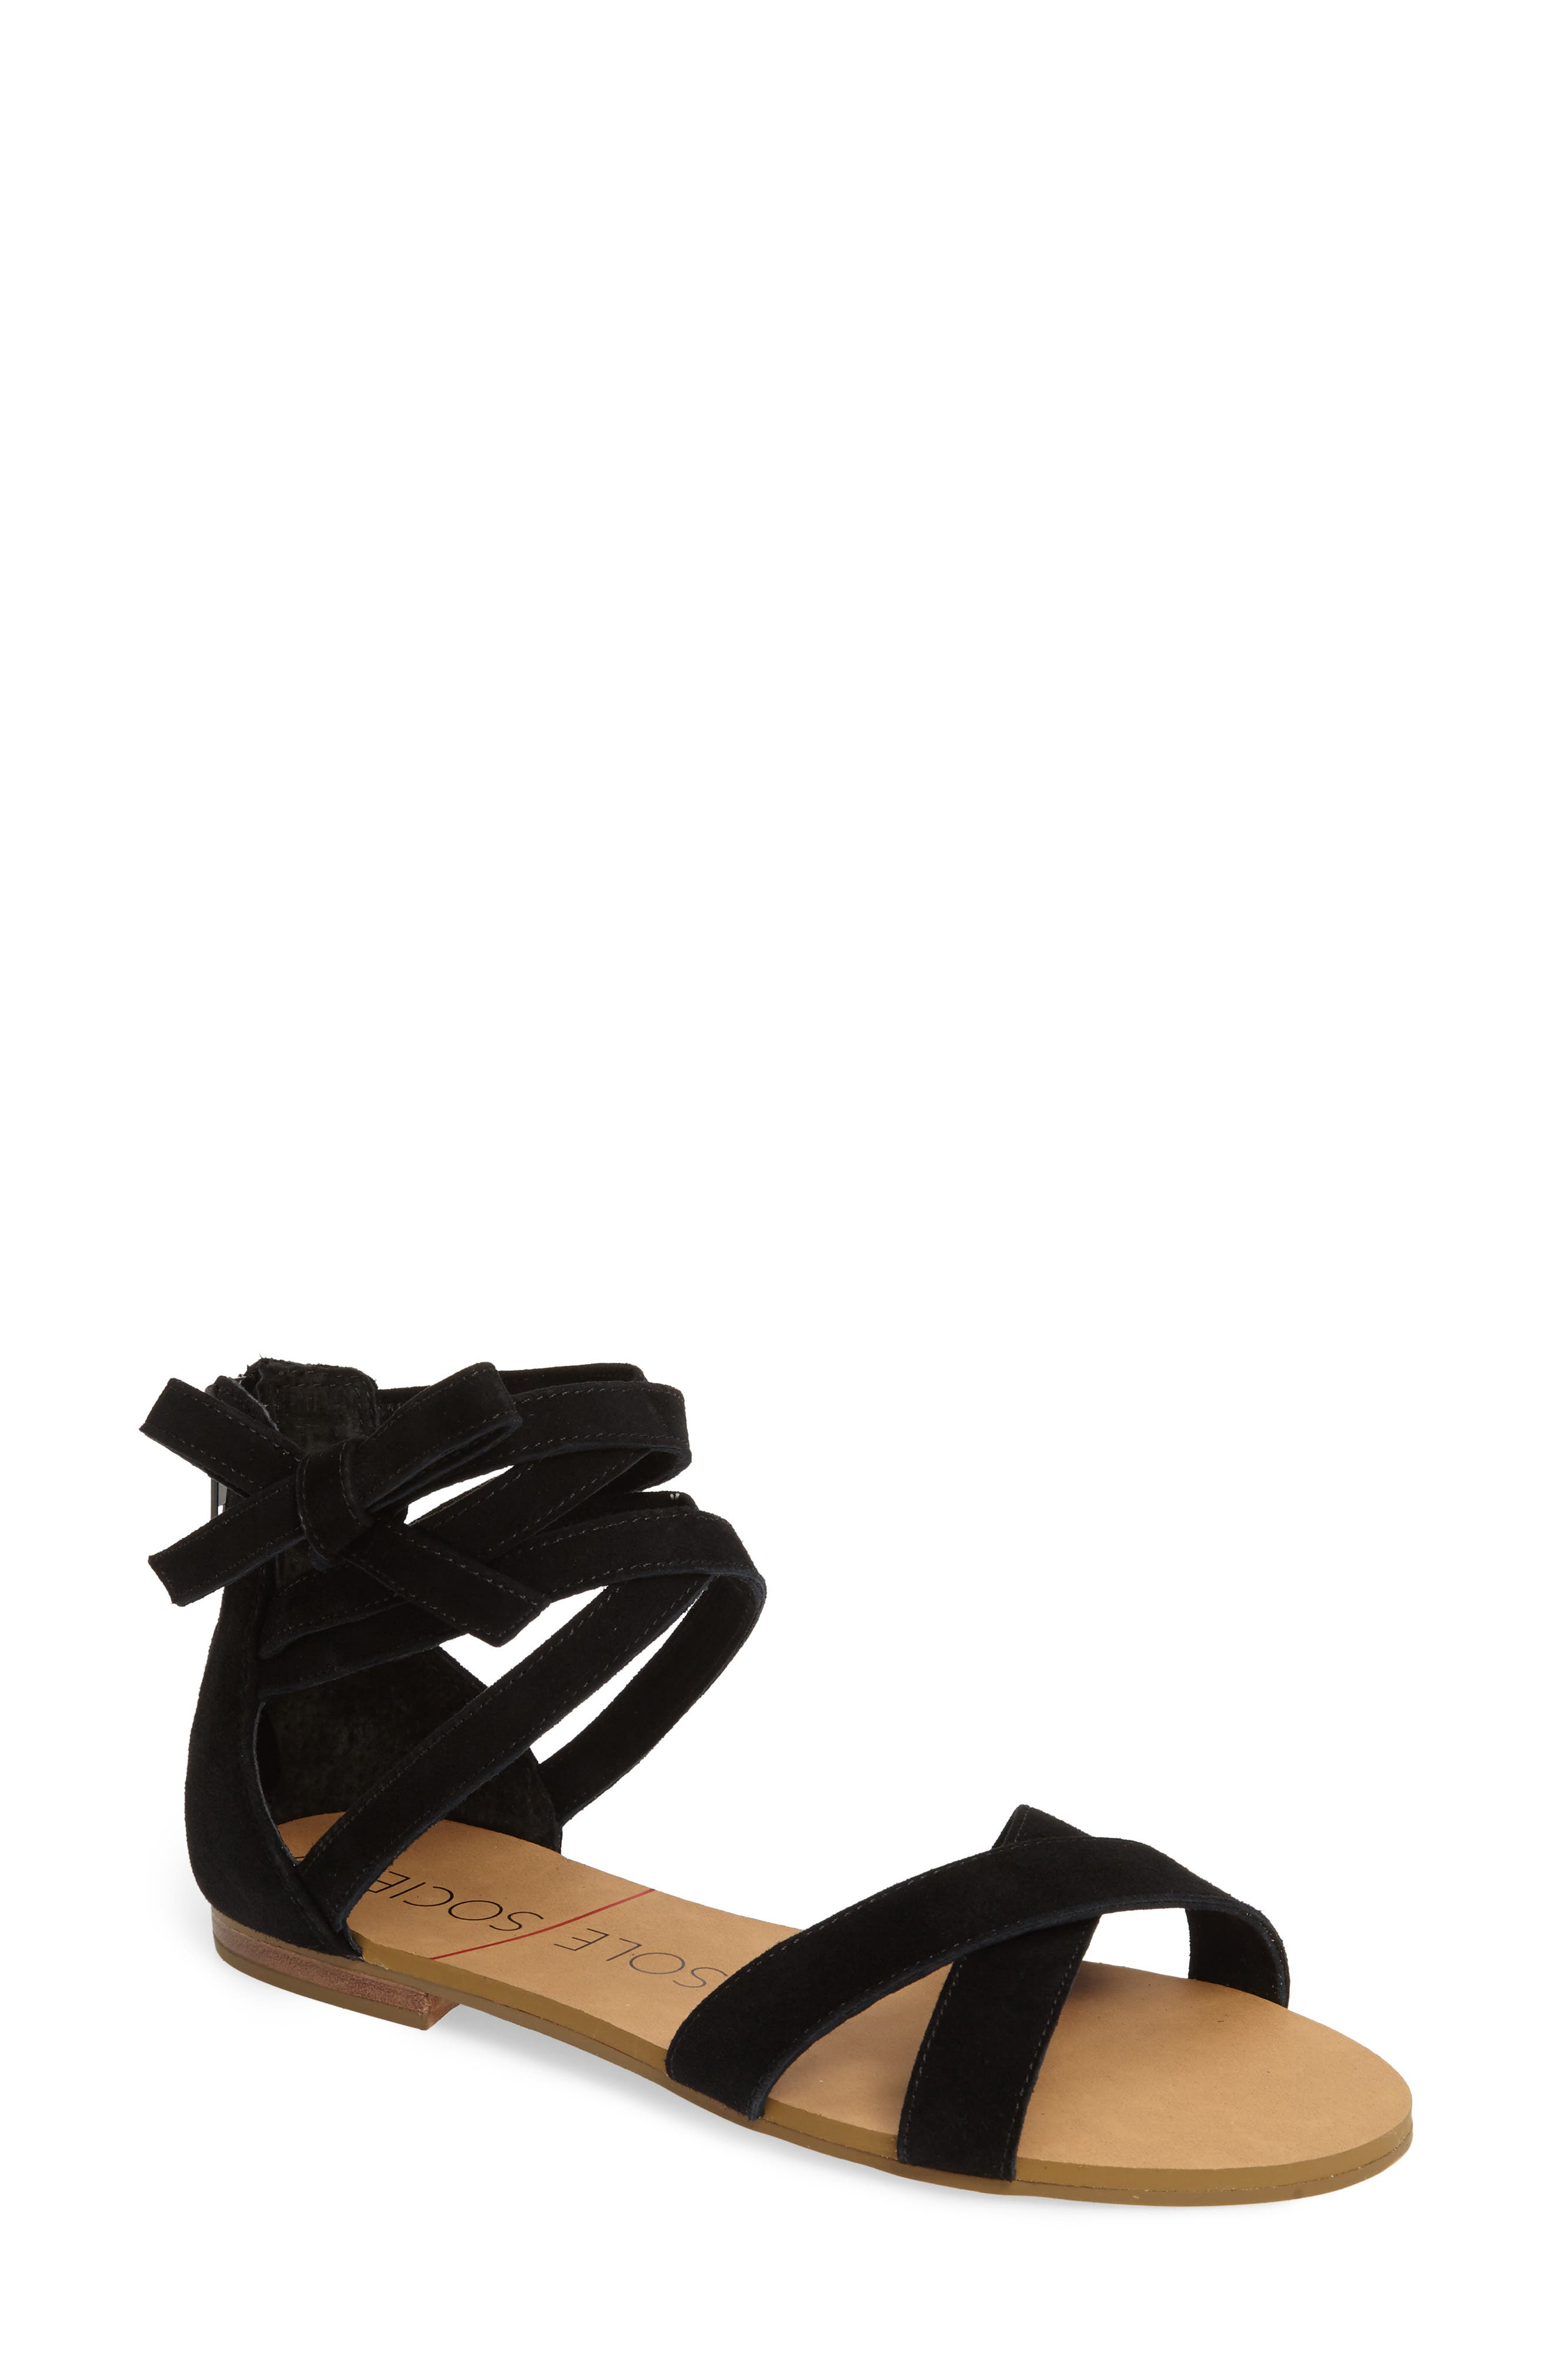 Sana Wraparound Sandal,                         Main,                         color, 003